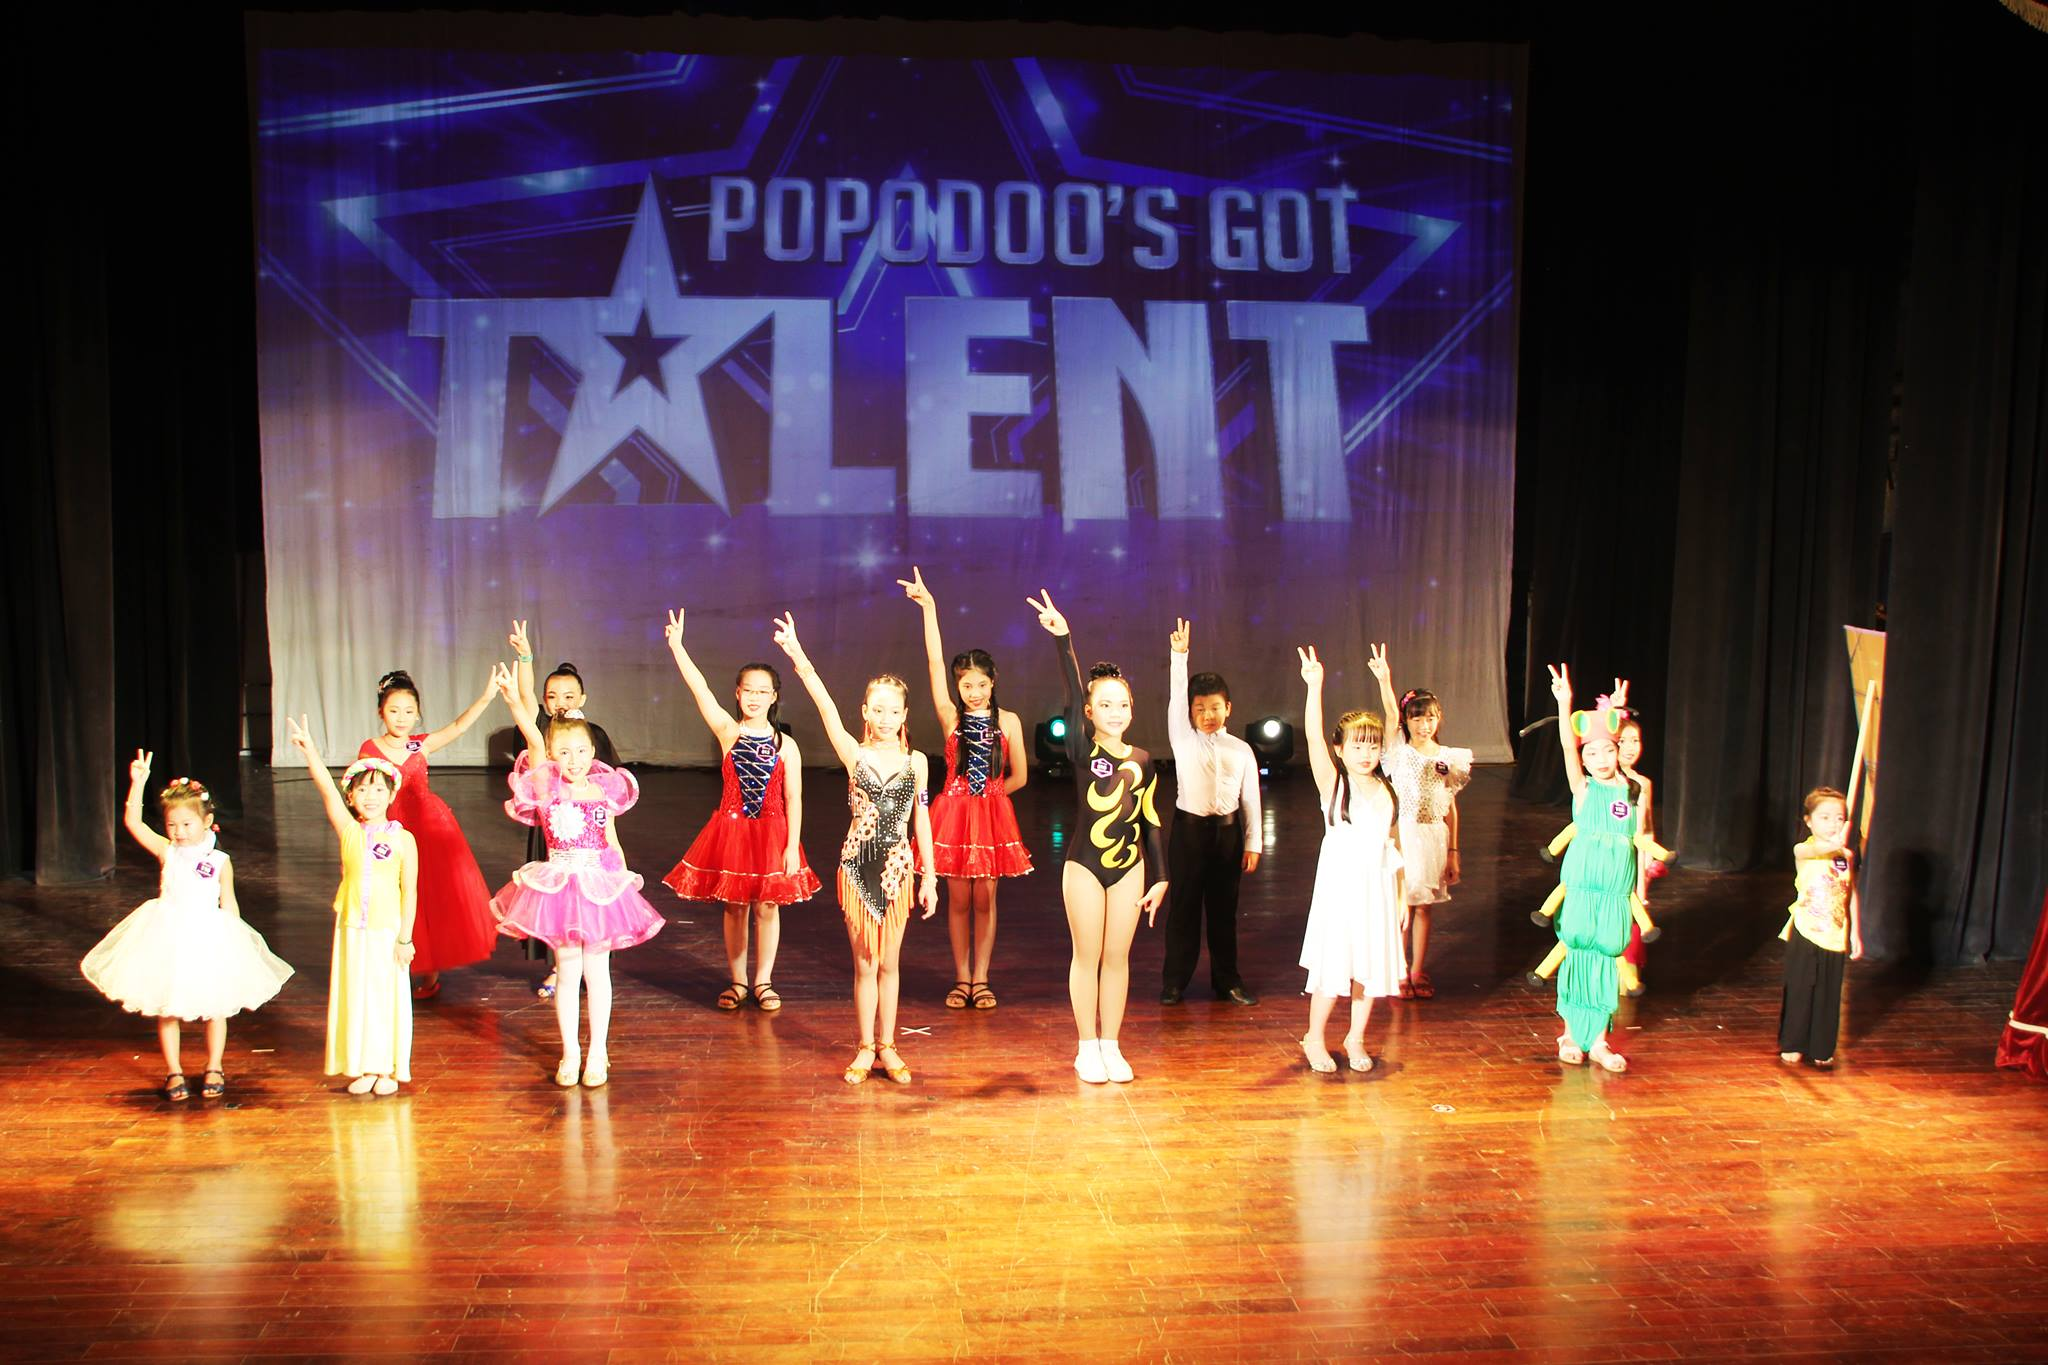 PoPoDoo's Got Talent trailer